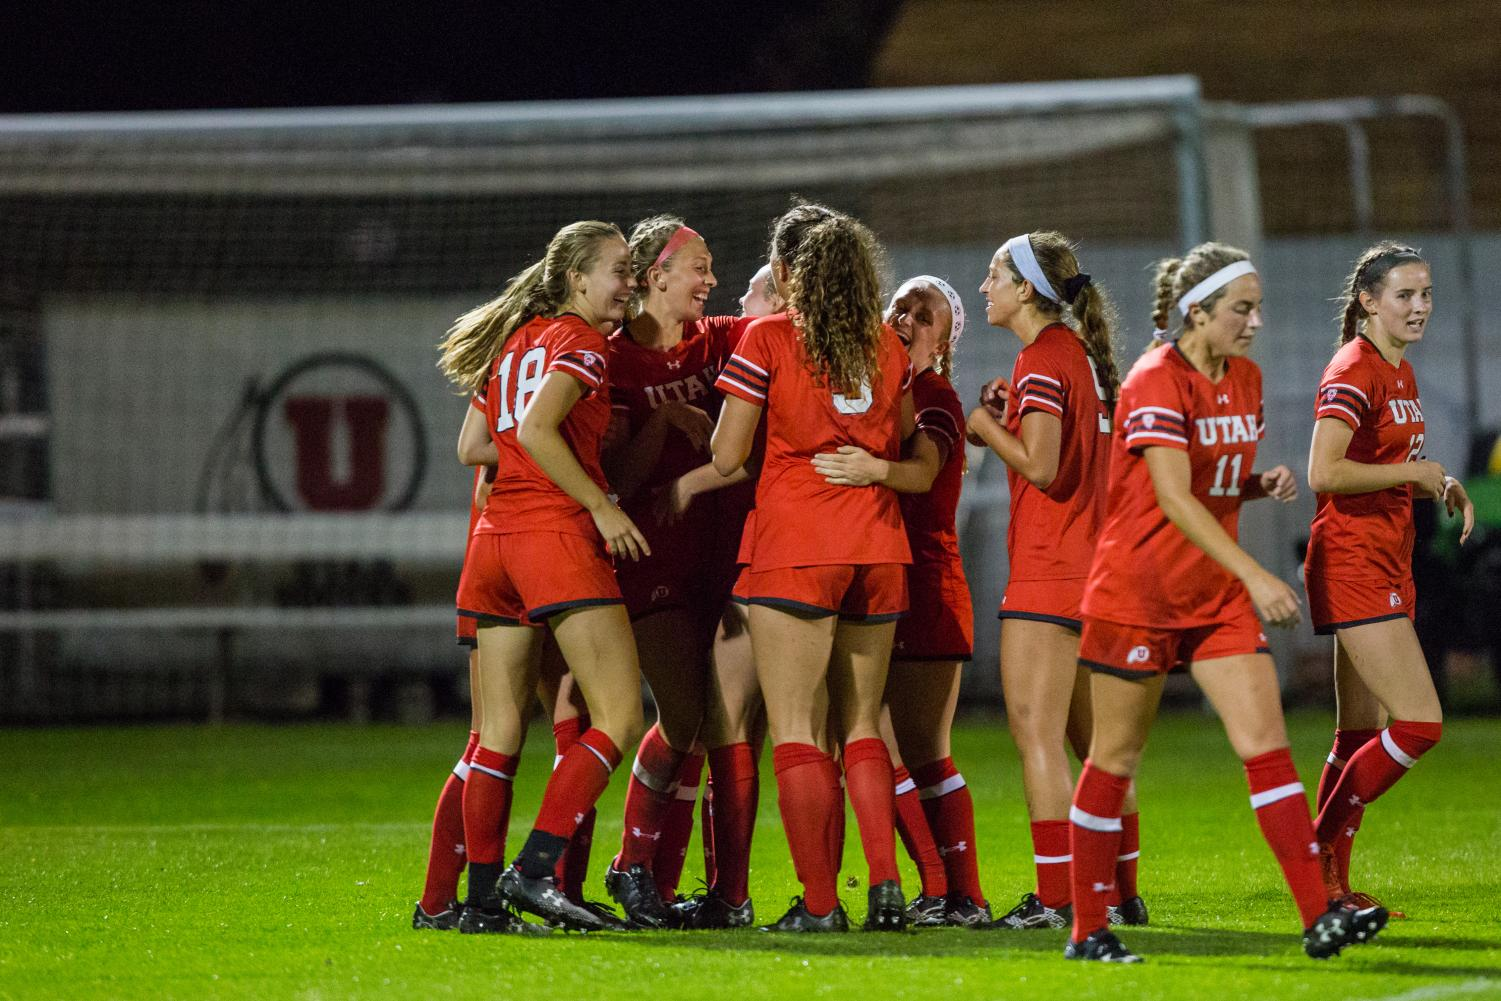 The University of Utah Women's Soccer Team celebrated after a goal in an NCAA Women's Soccer game vs. Washington at Ute Soccer Field in Salt Lake City, UT on Thursday October 04, 2018.(Photo by Curtis Lin | Daily Utah Chronicle)